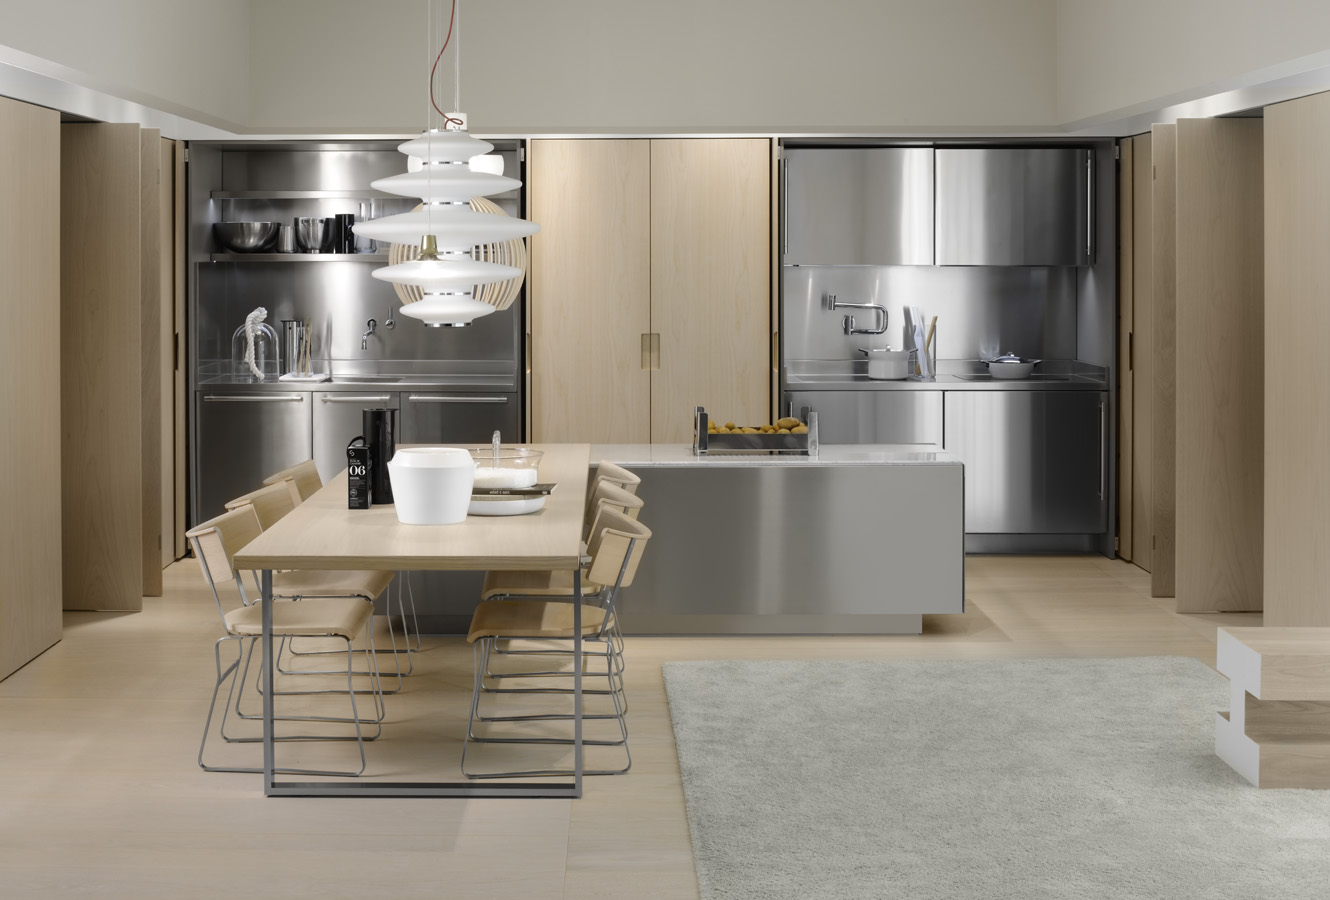 Modern italian kitchen design from arclinea for Italian modern kitchen design